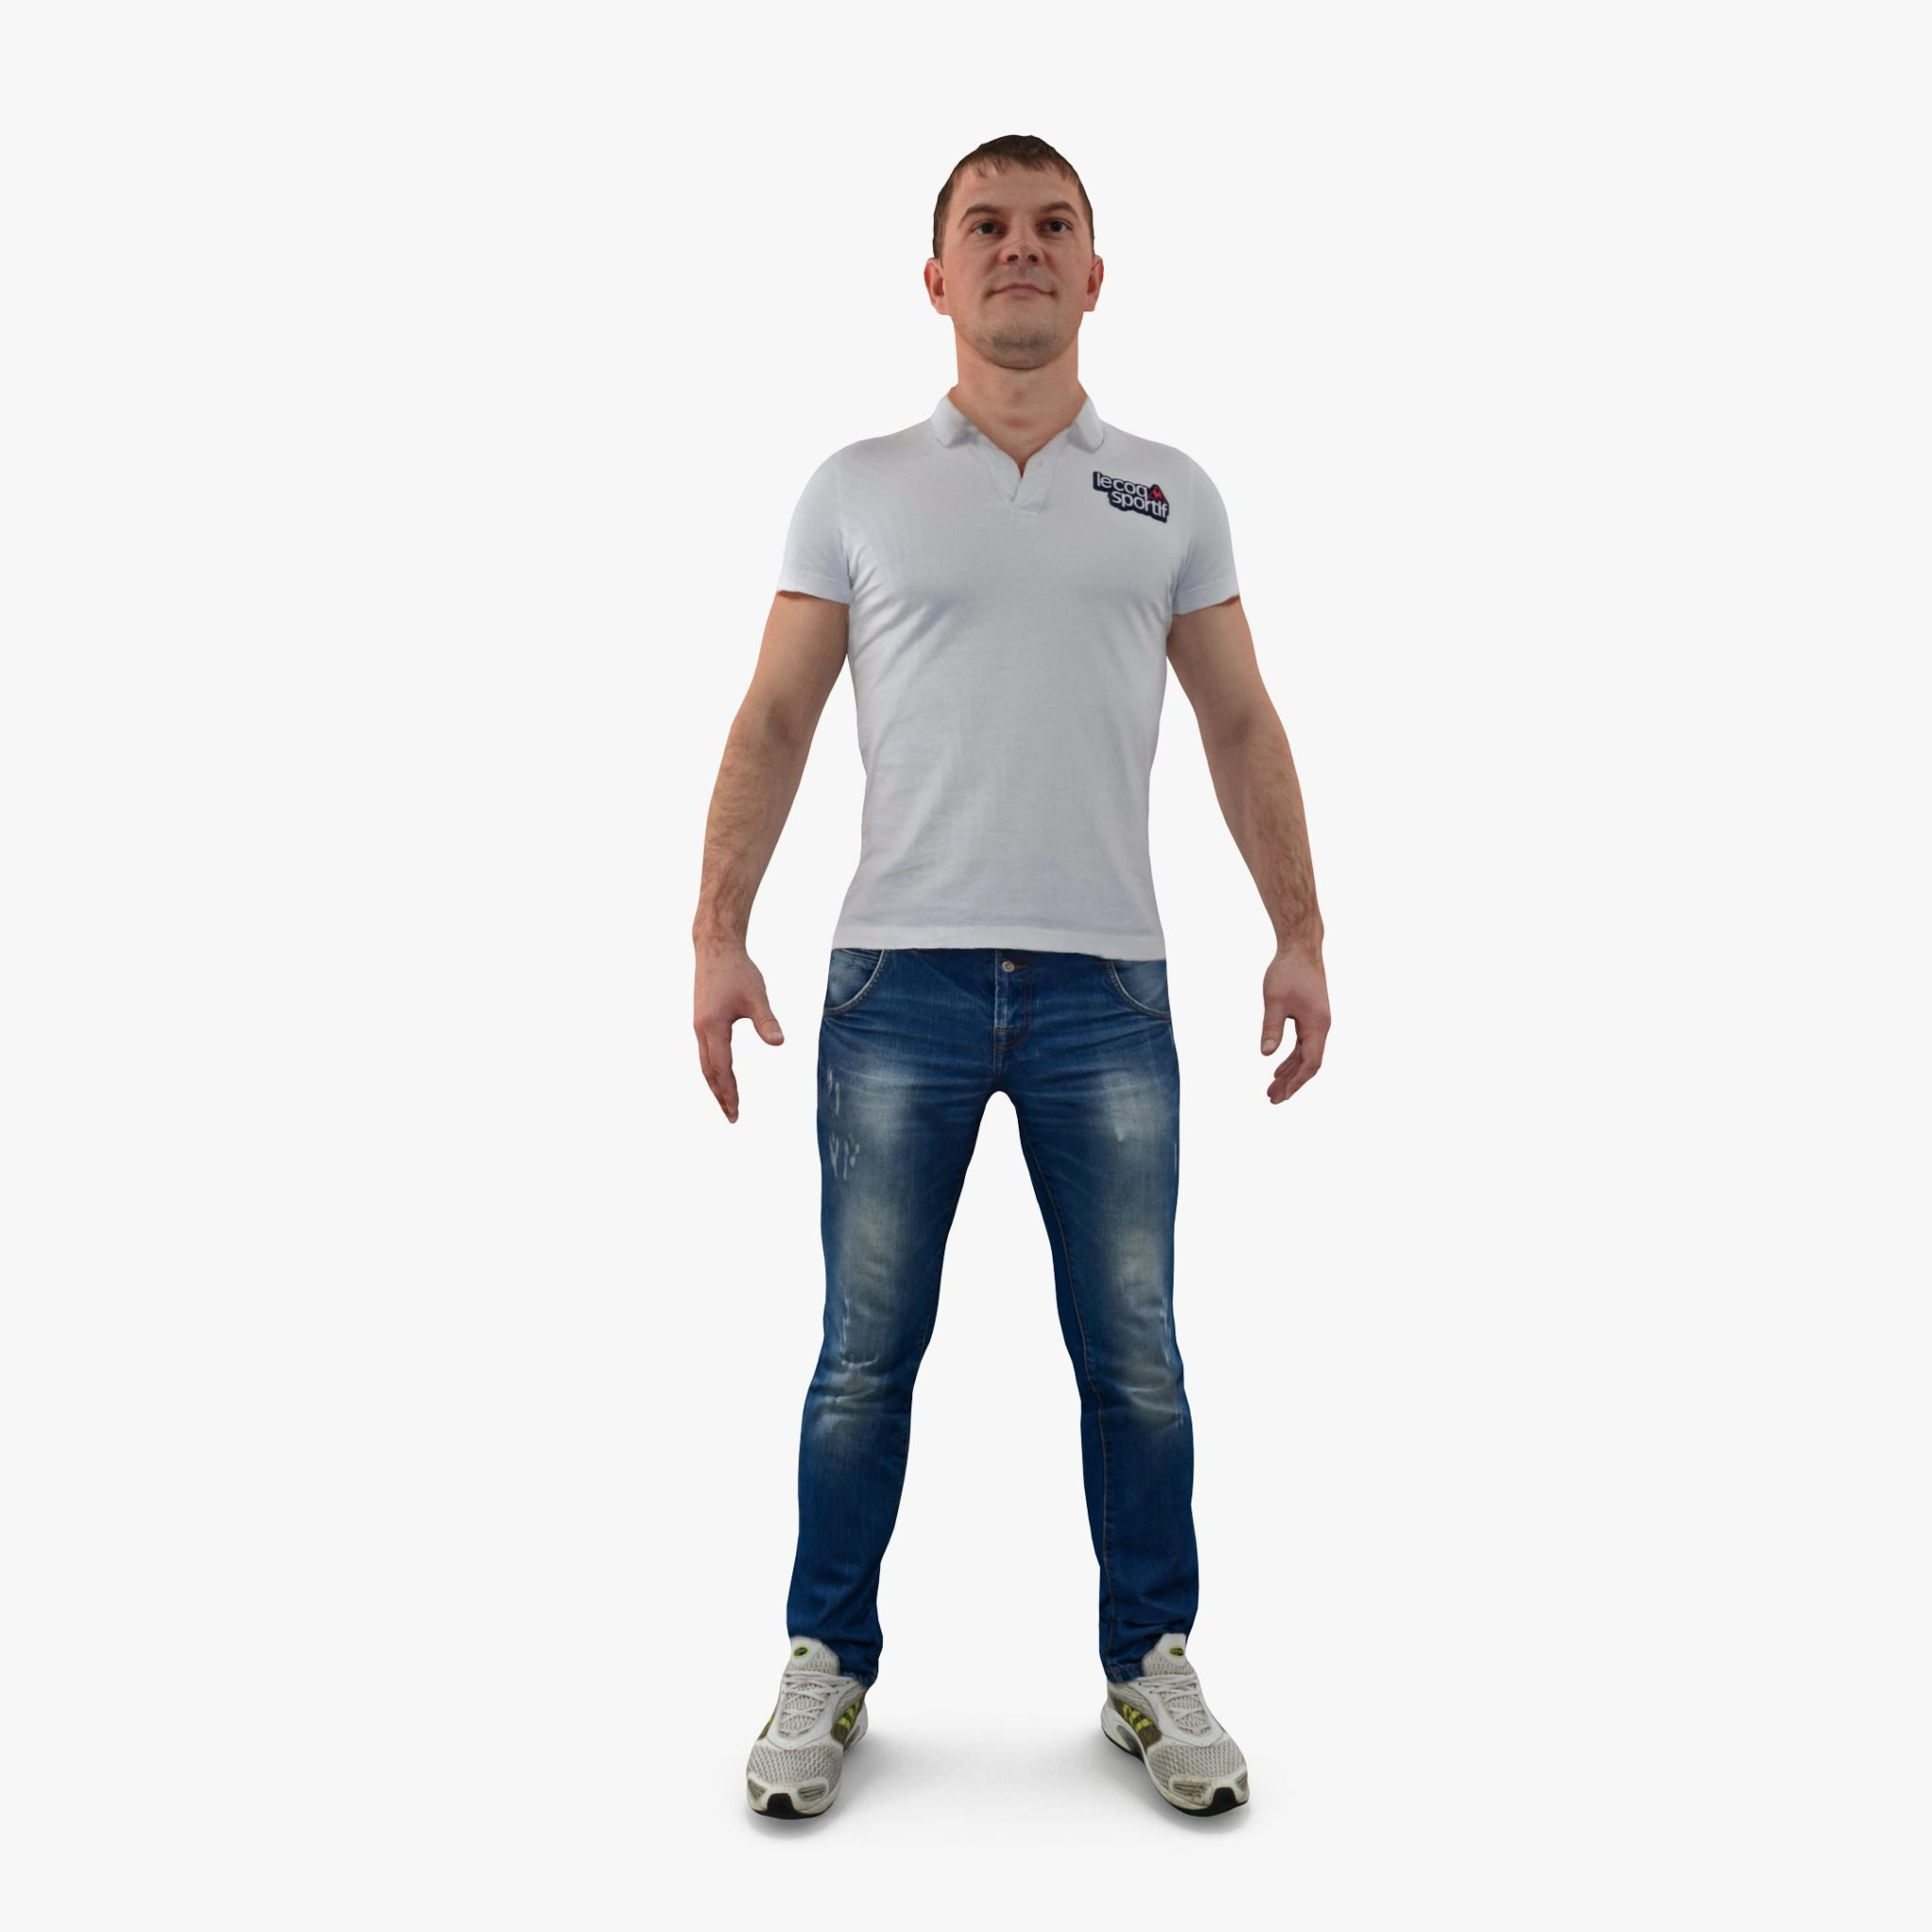 City Man Apose 3D Model | 3DTree Scanning Studio